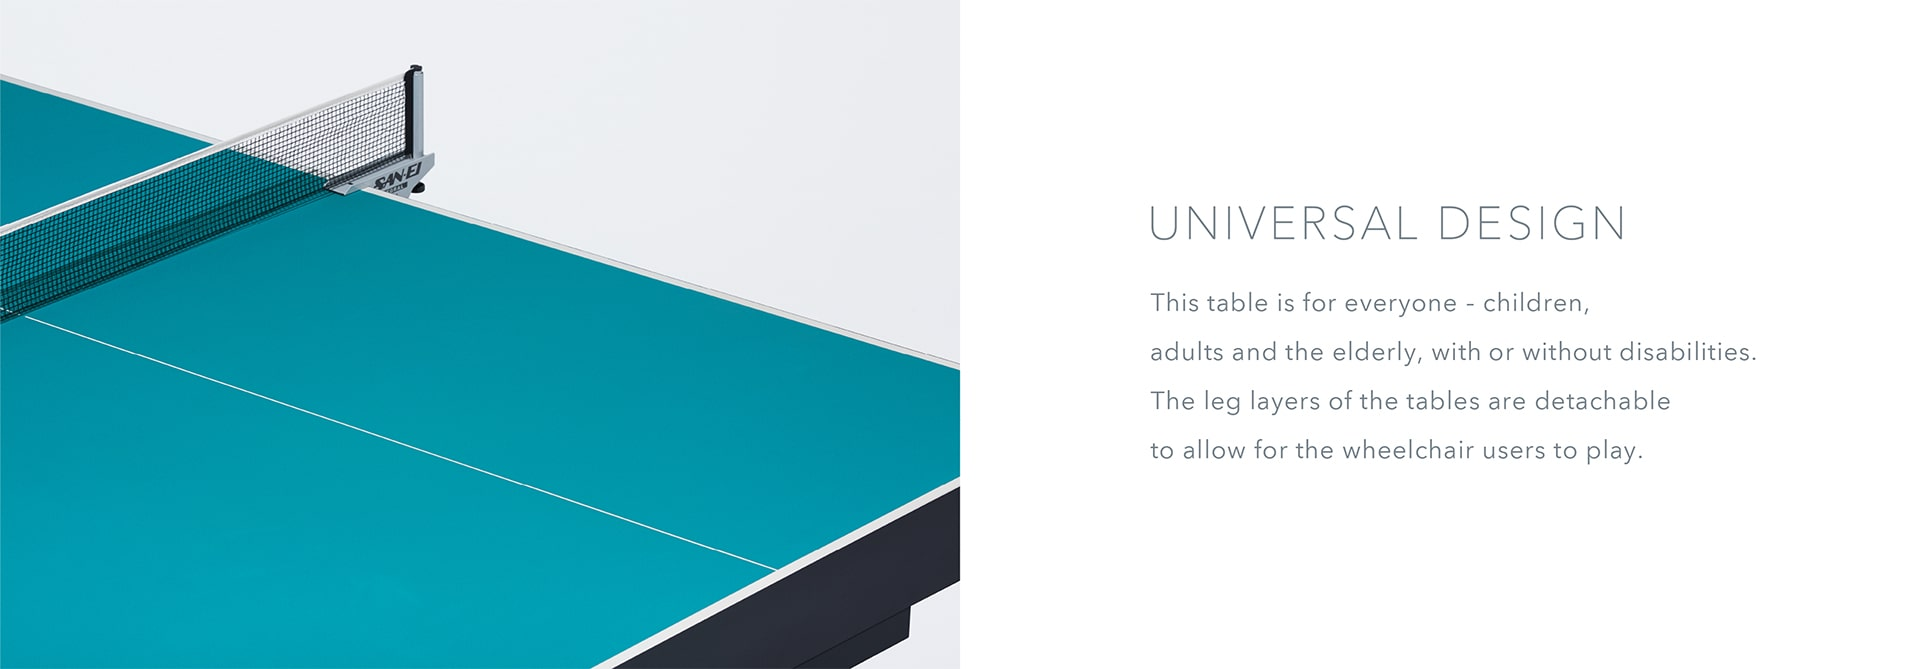 Universal Design This table is for everyone—children, adults and the elderly, ability or disability. The leg layers of the tables are detachable to allow for the wheelchair users to play. Stand in front of these tables and experience the world of para athletes.